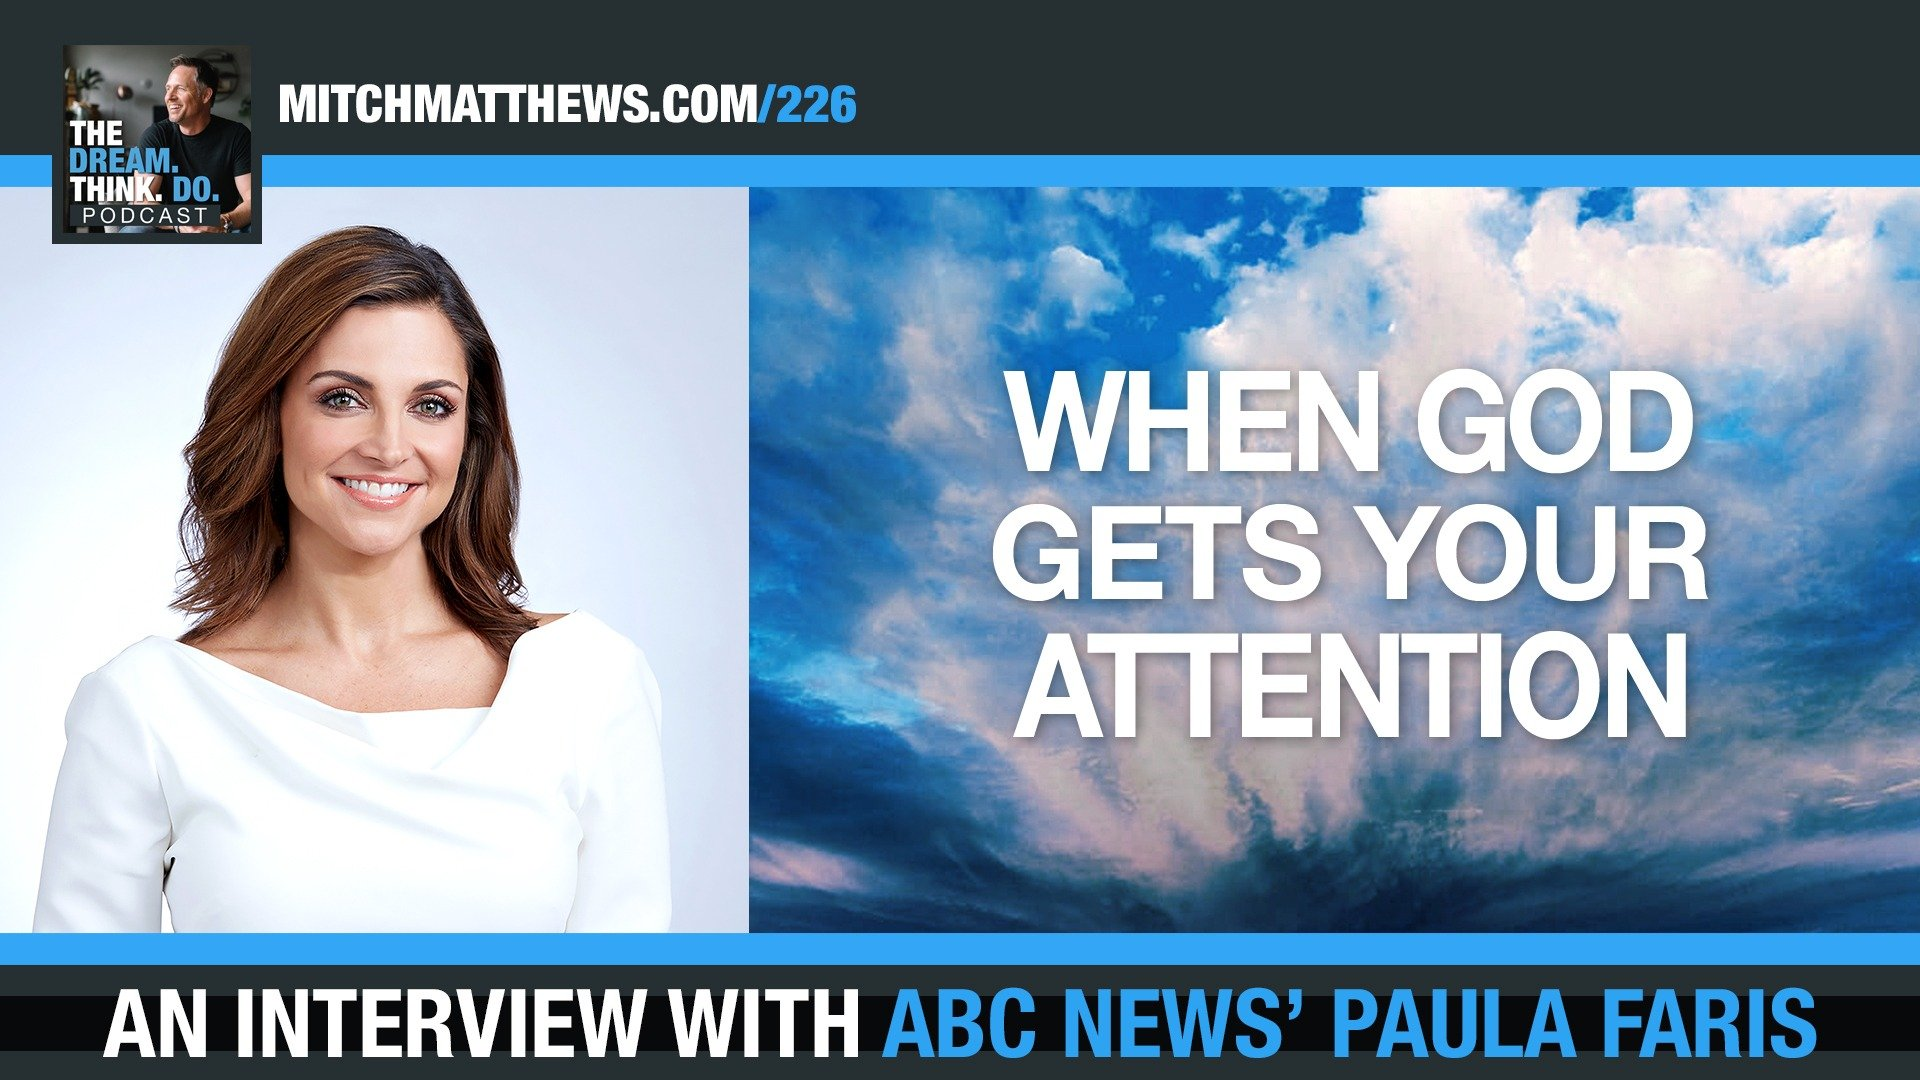 When God Gets Your Attention with ABC News' Paula Faris